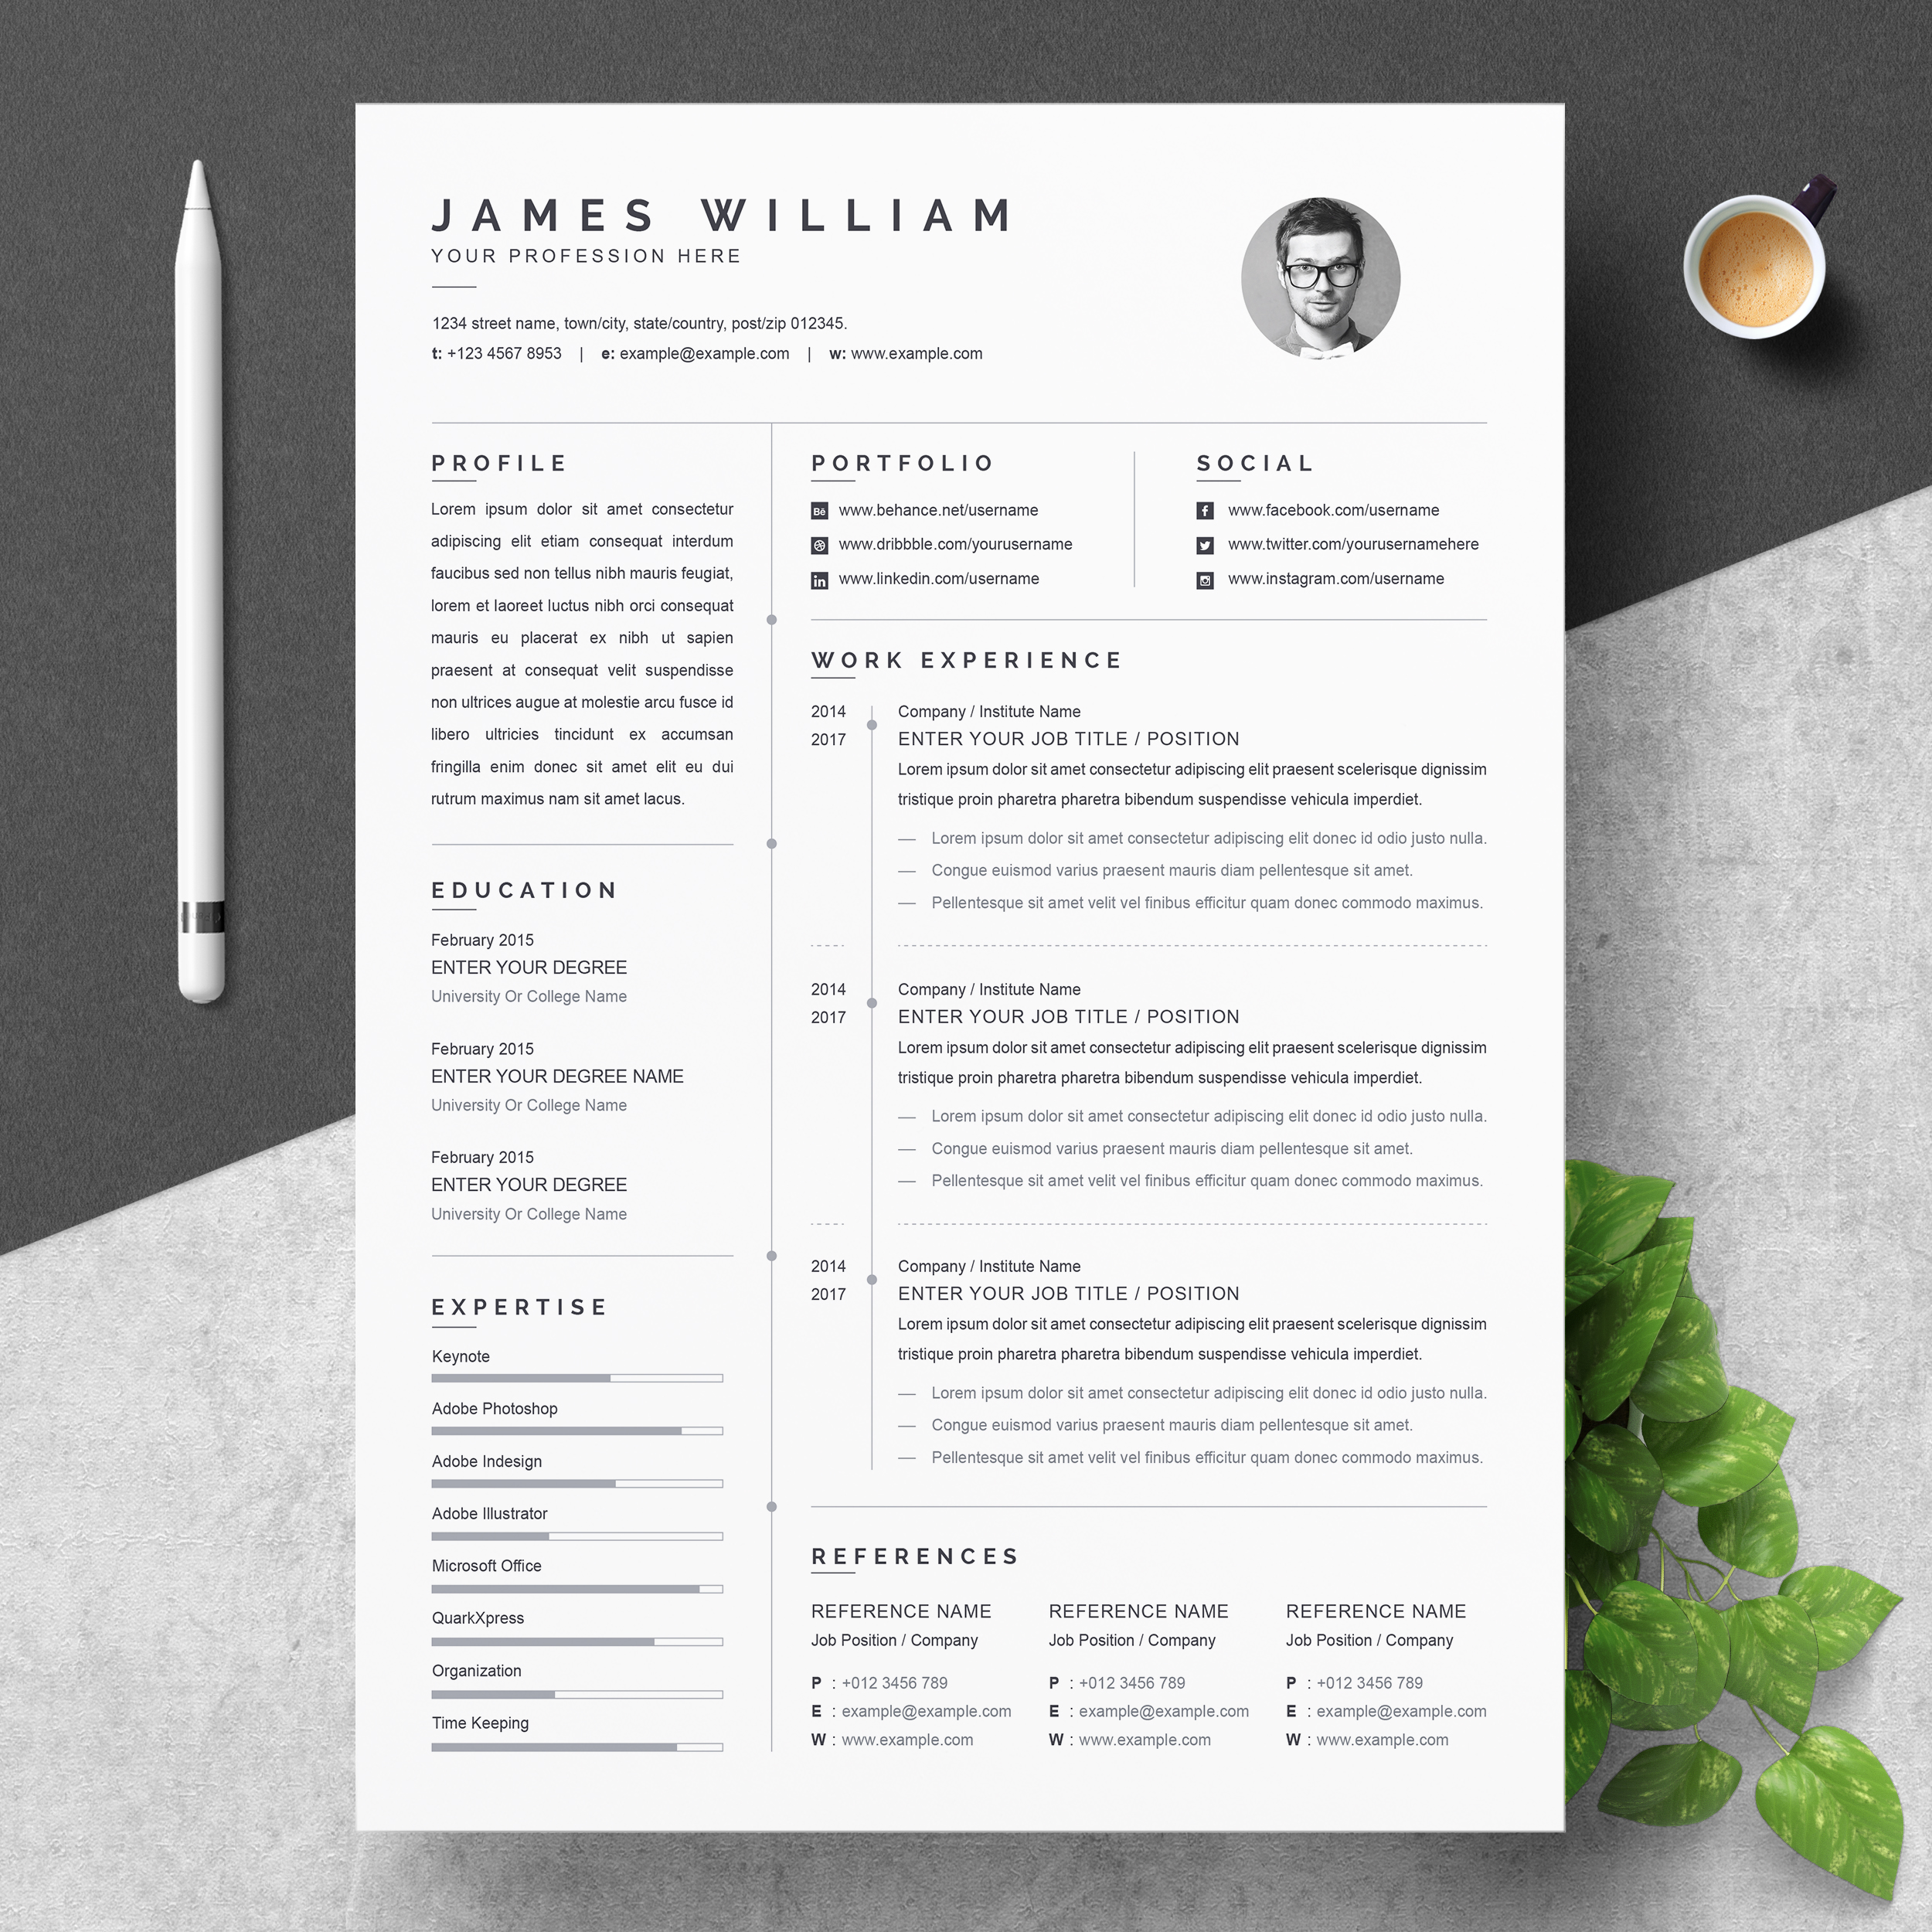 resume foundation one template free sample for business analyst banking babysitting Resume One Page Resume Template Free